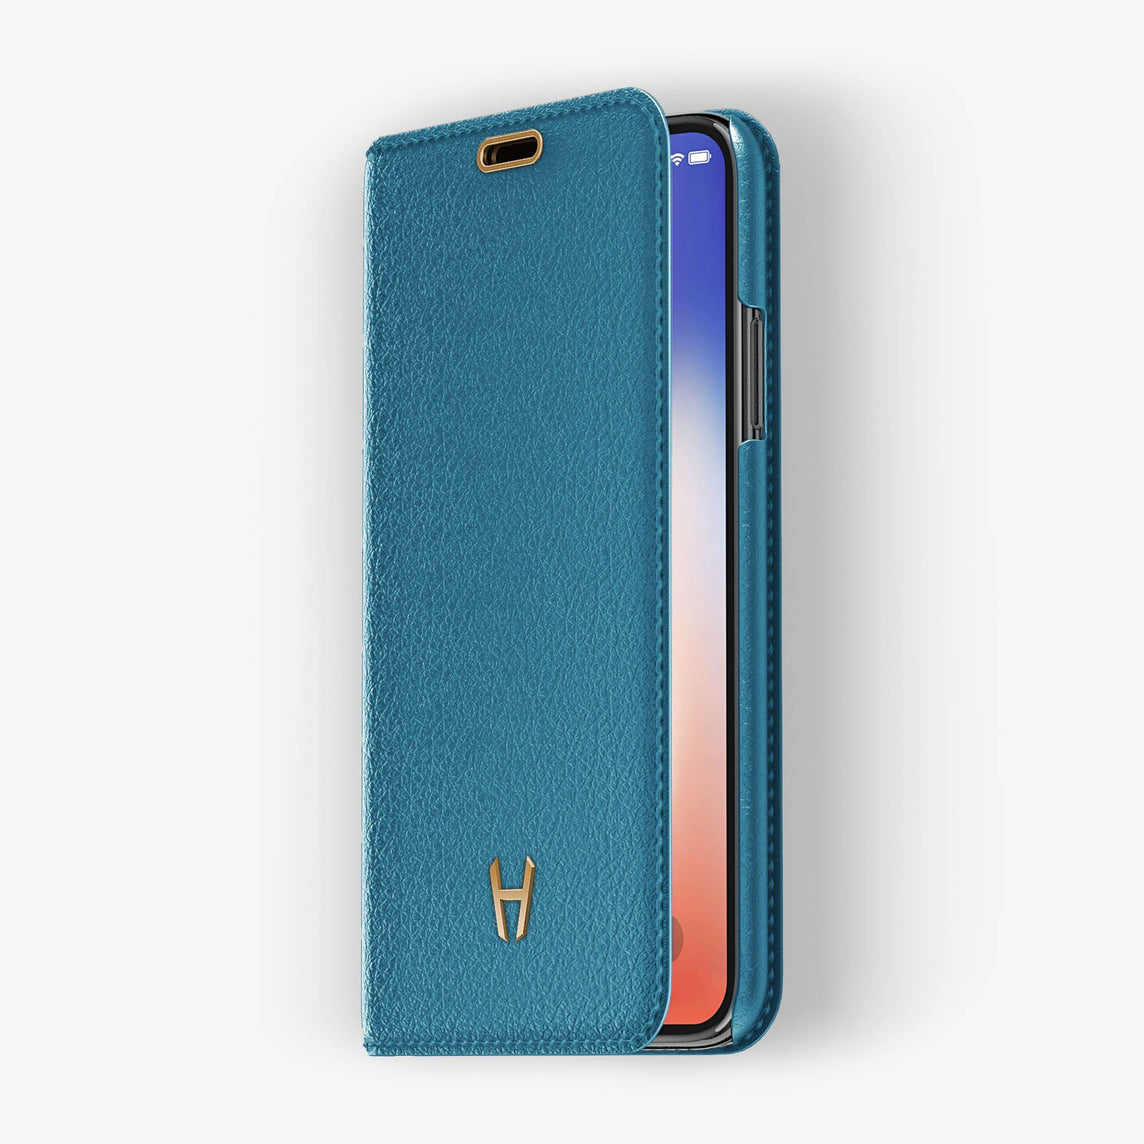 Peony Blue Calfskin iPhone Folio Case for iPhone X finishing rose gold - Hadoro Luxury Cases img1